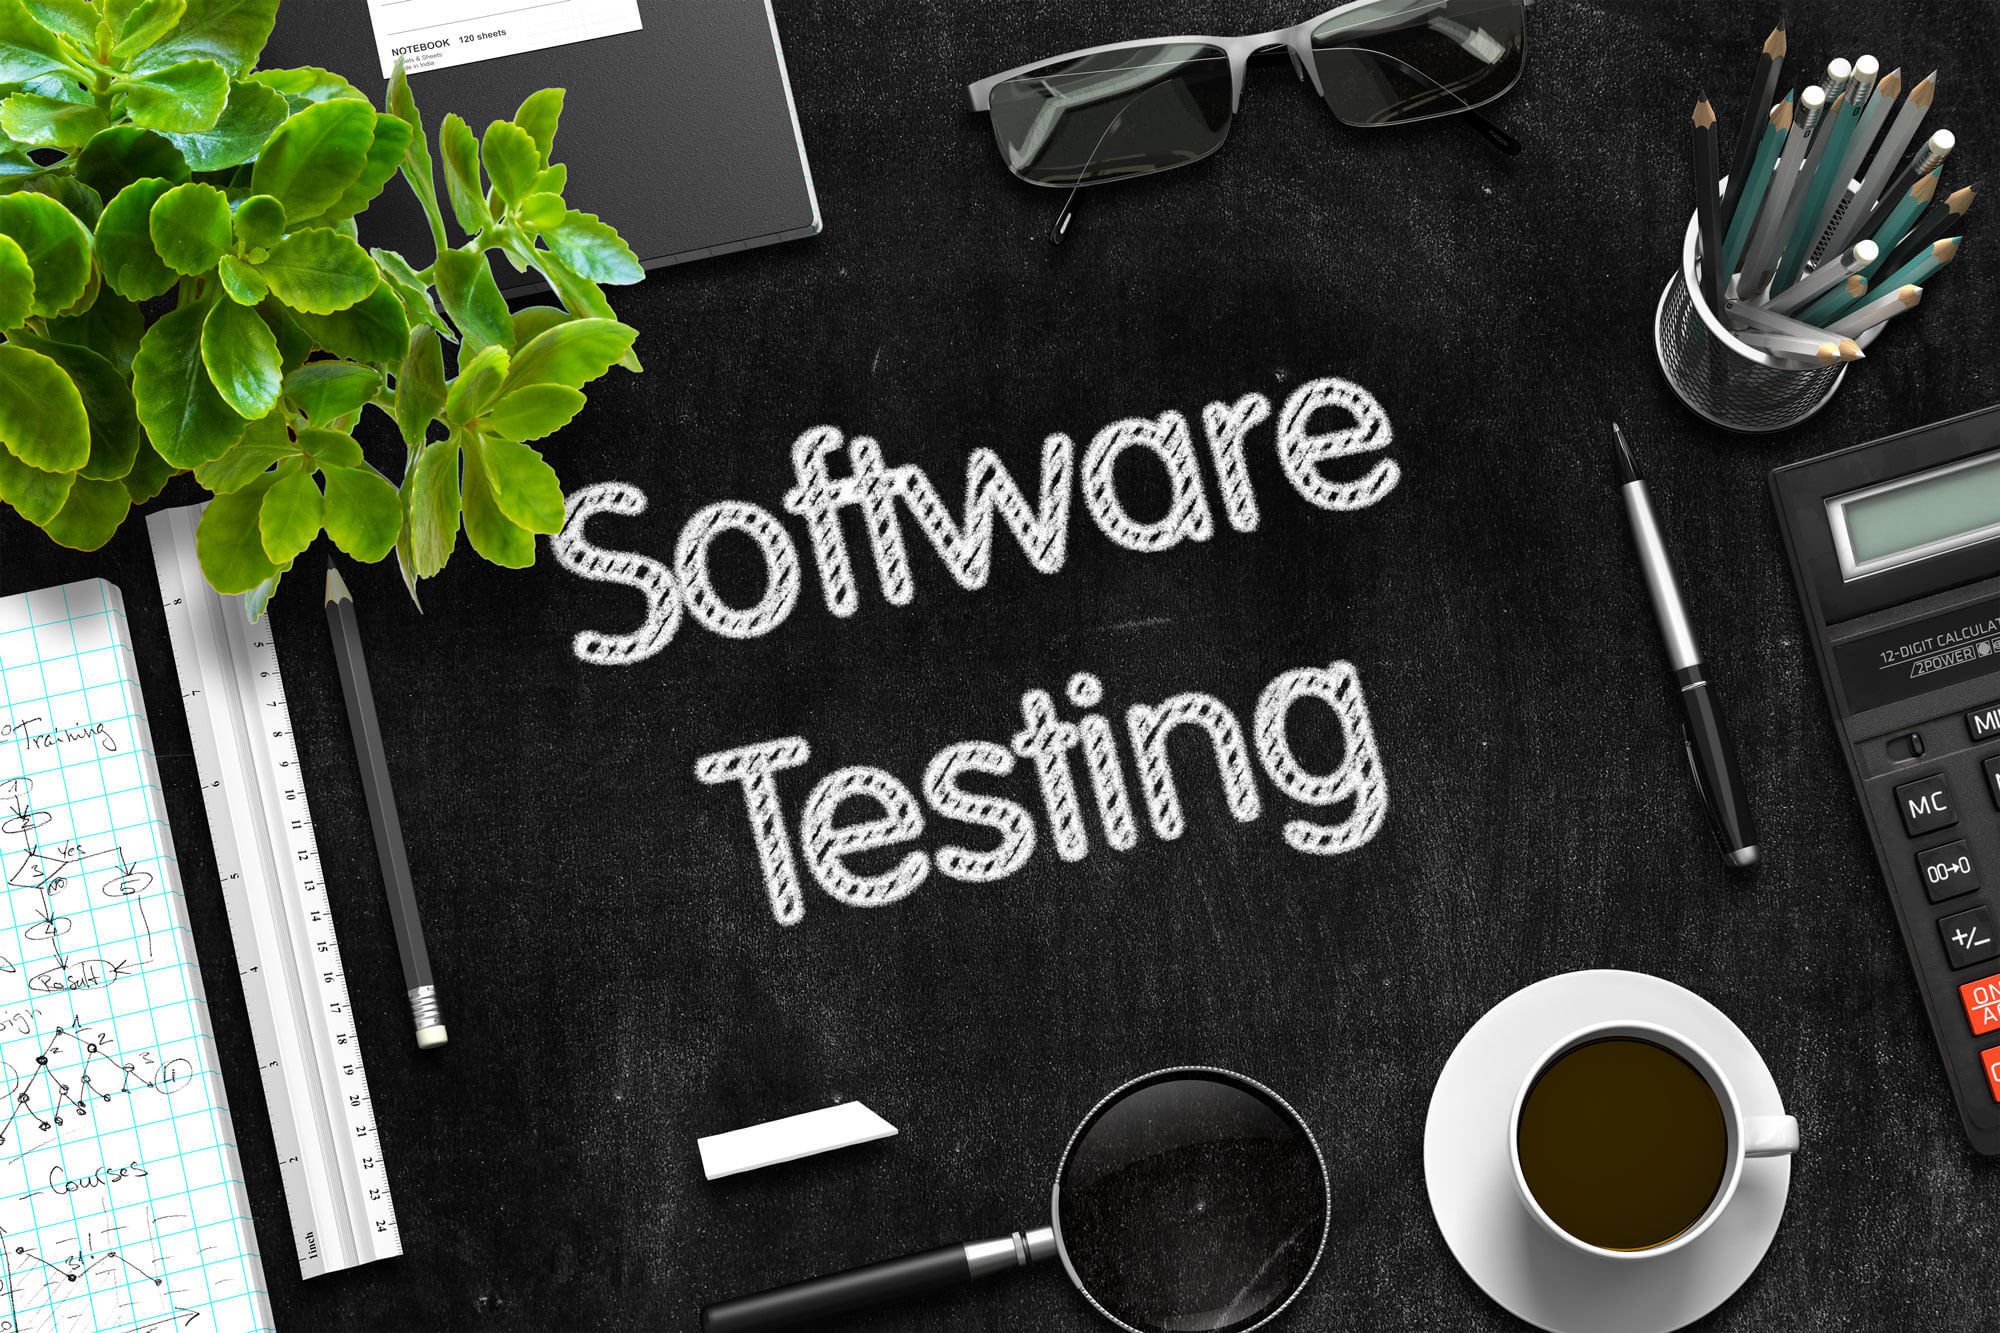 Software Quality Assurance solutions